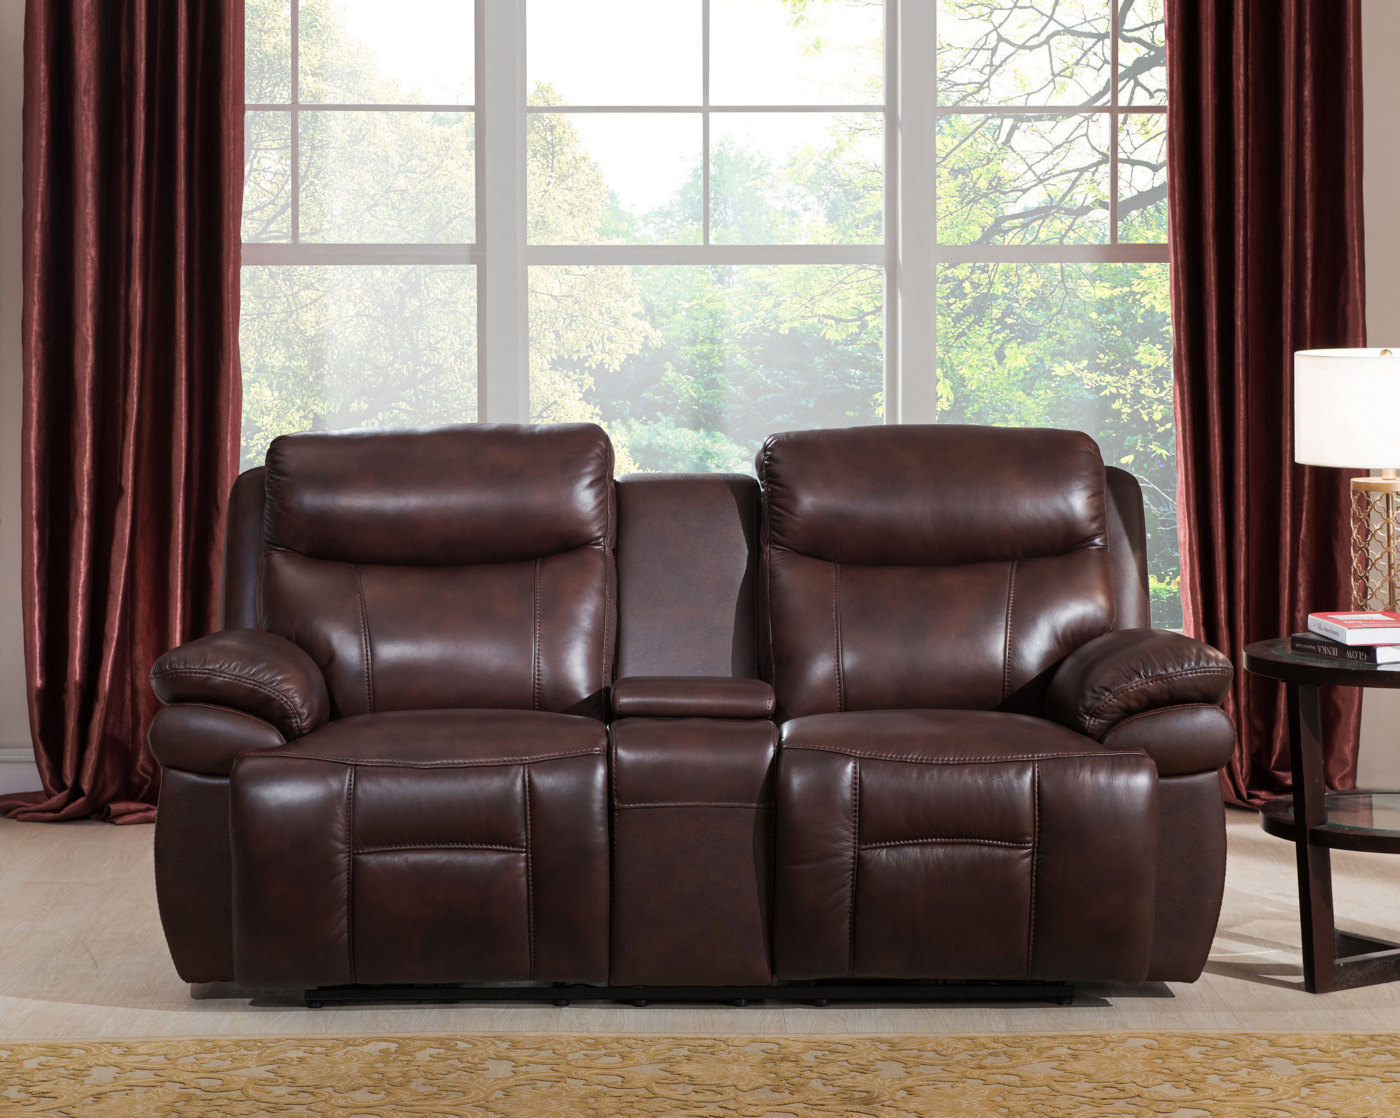 genuine leather power reclining sofa off white slipcover summerlands real full recline